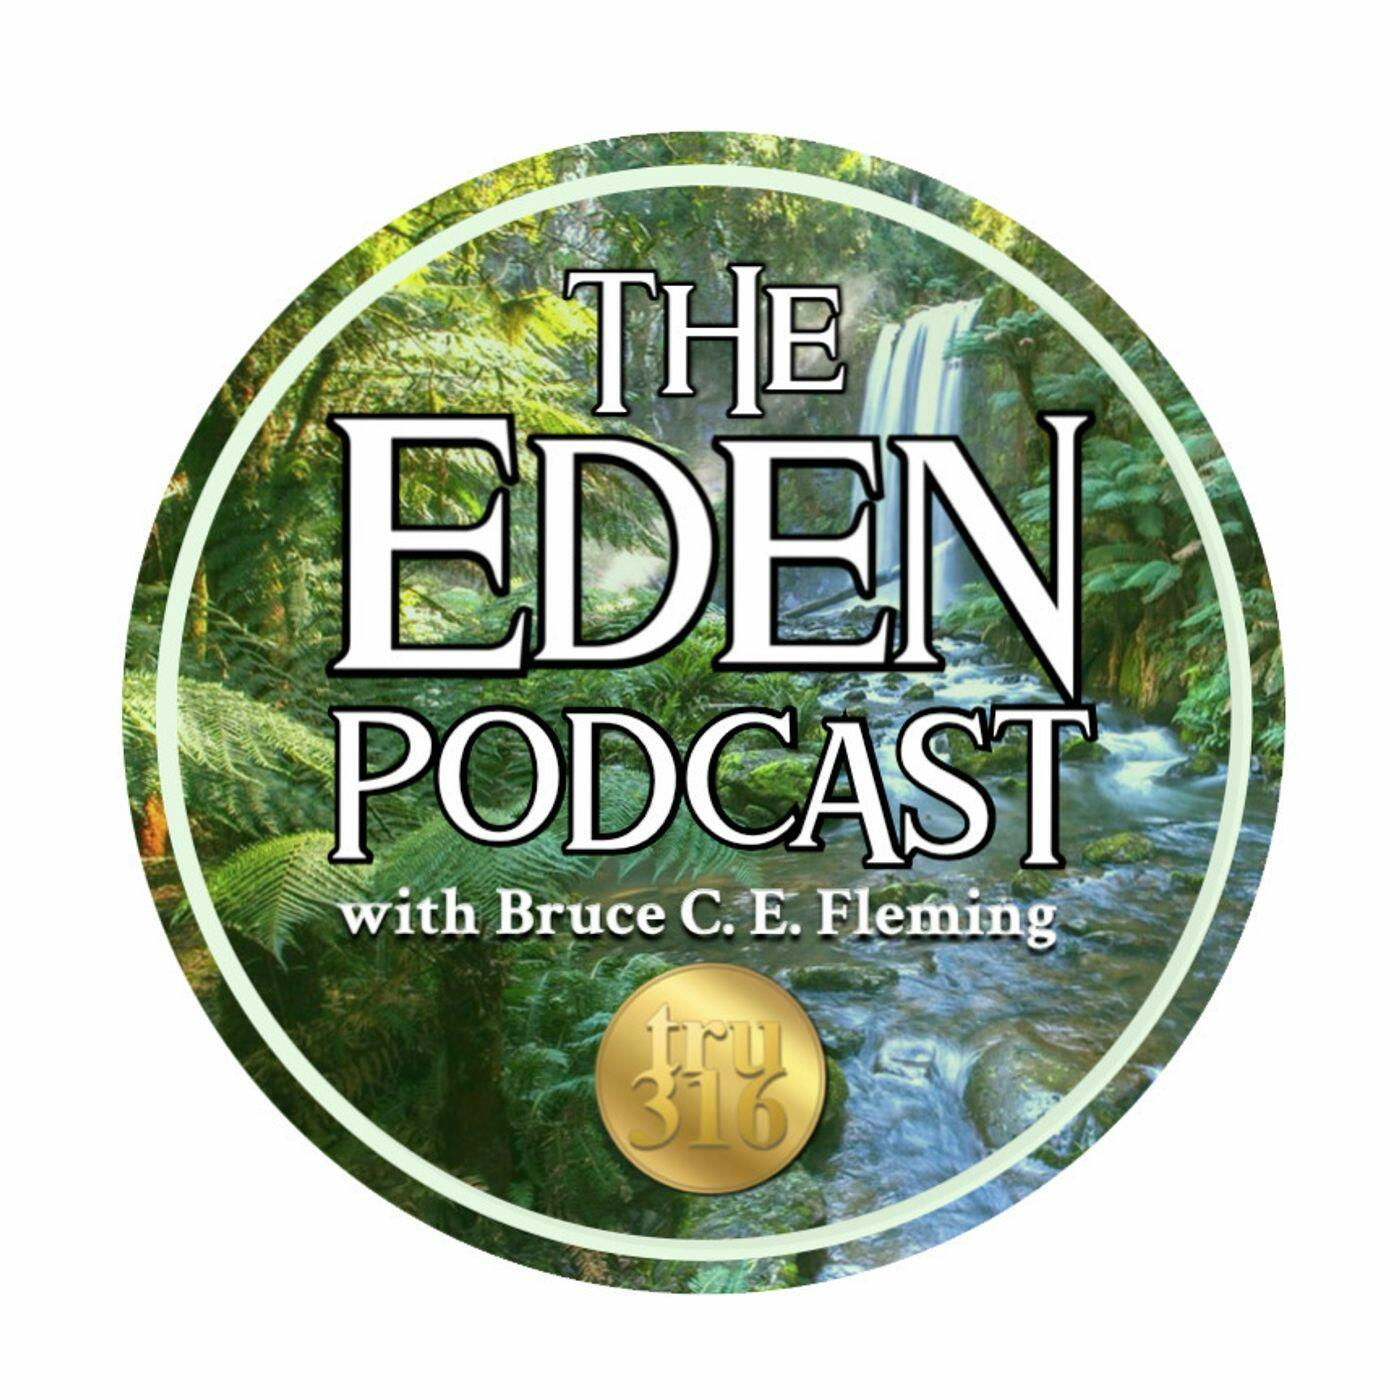 The Eden Podcast with Bruce C. E. Fleming